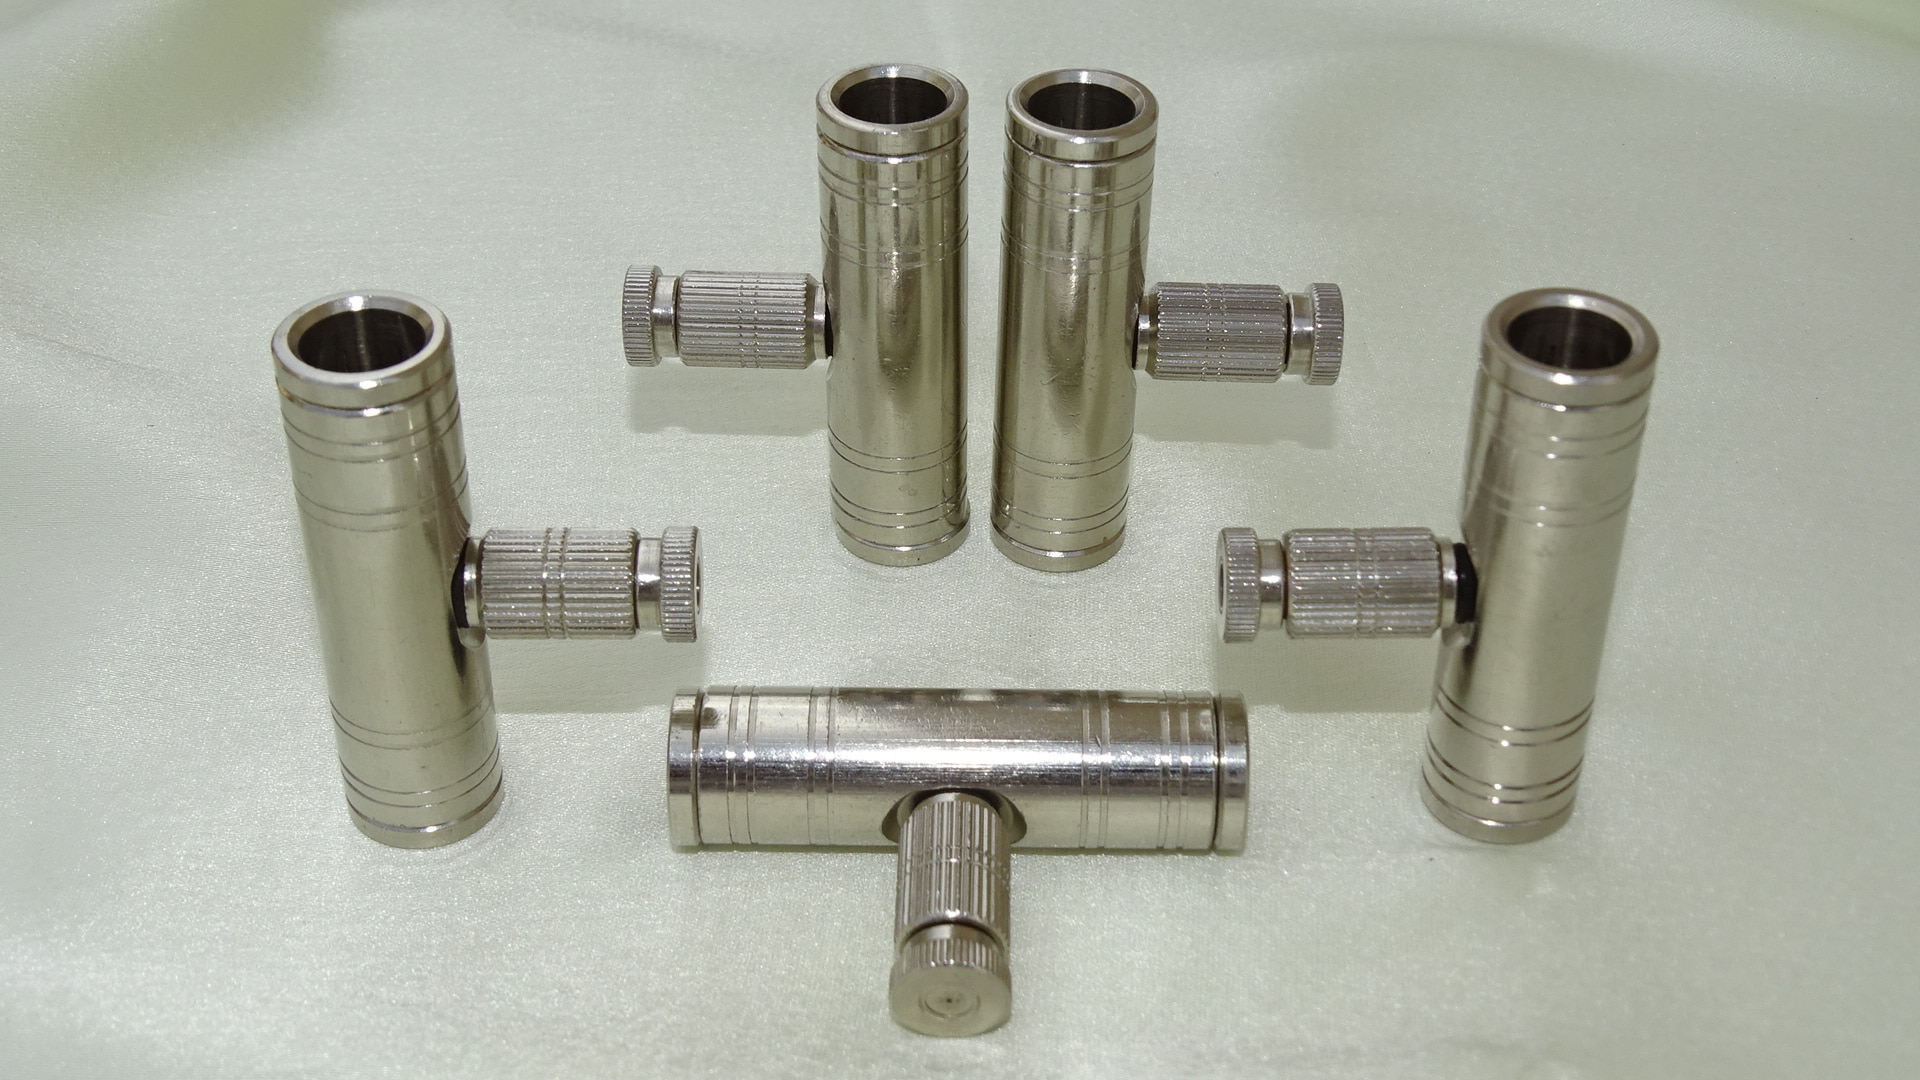 SLIP LOCK CONNECTOR plays key role in high pressure misting system. We make accurately 3/8 push type connectors to push & pull easily. Nickle Chrome Plating gives it smooth finish look.  We are Rajkot based Manufacturer & supplies to all major cities in India.